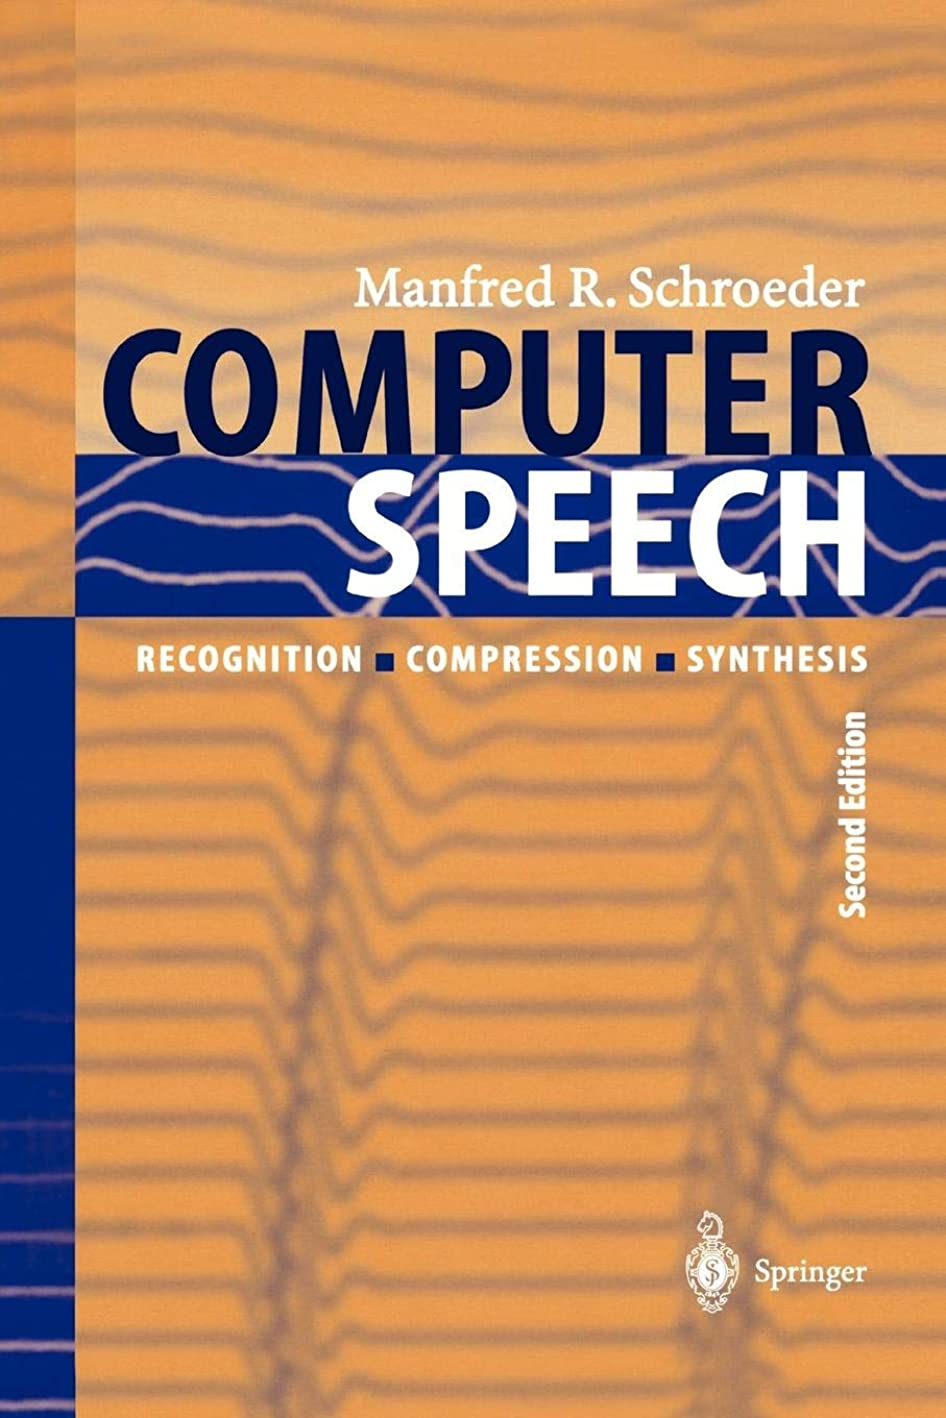 敬な沈黙乳Computer Speech: Recognition, Compression, Synthesis (Springer Series in Information Sciences)